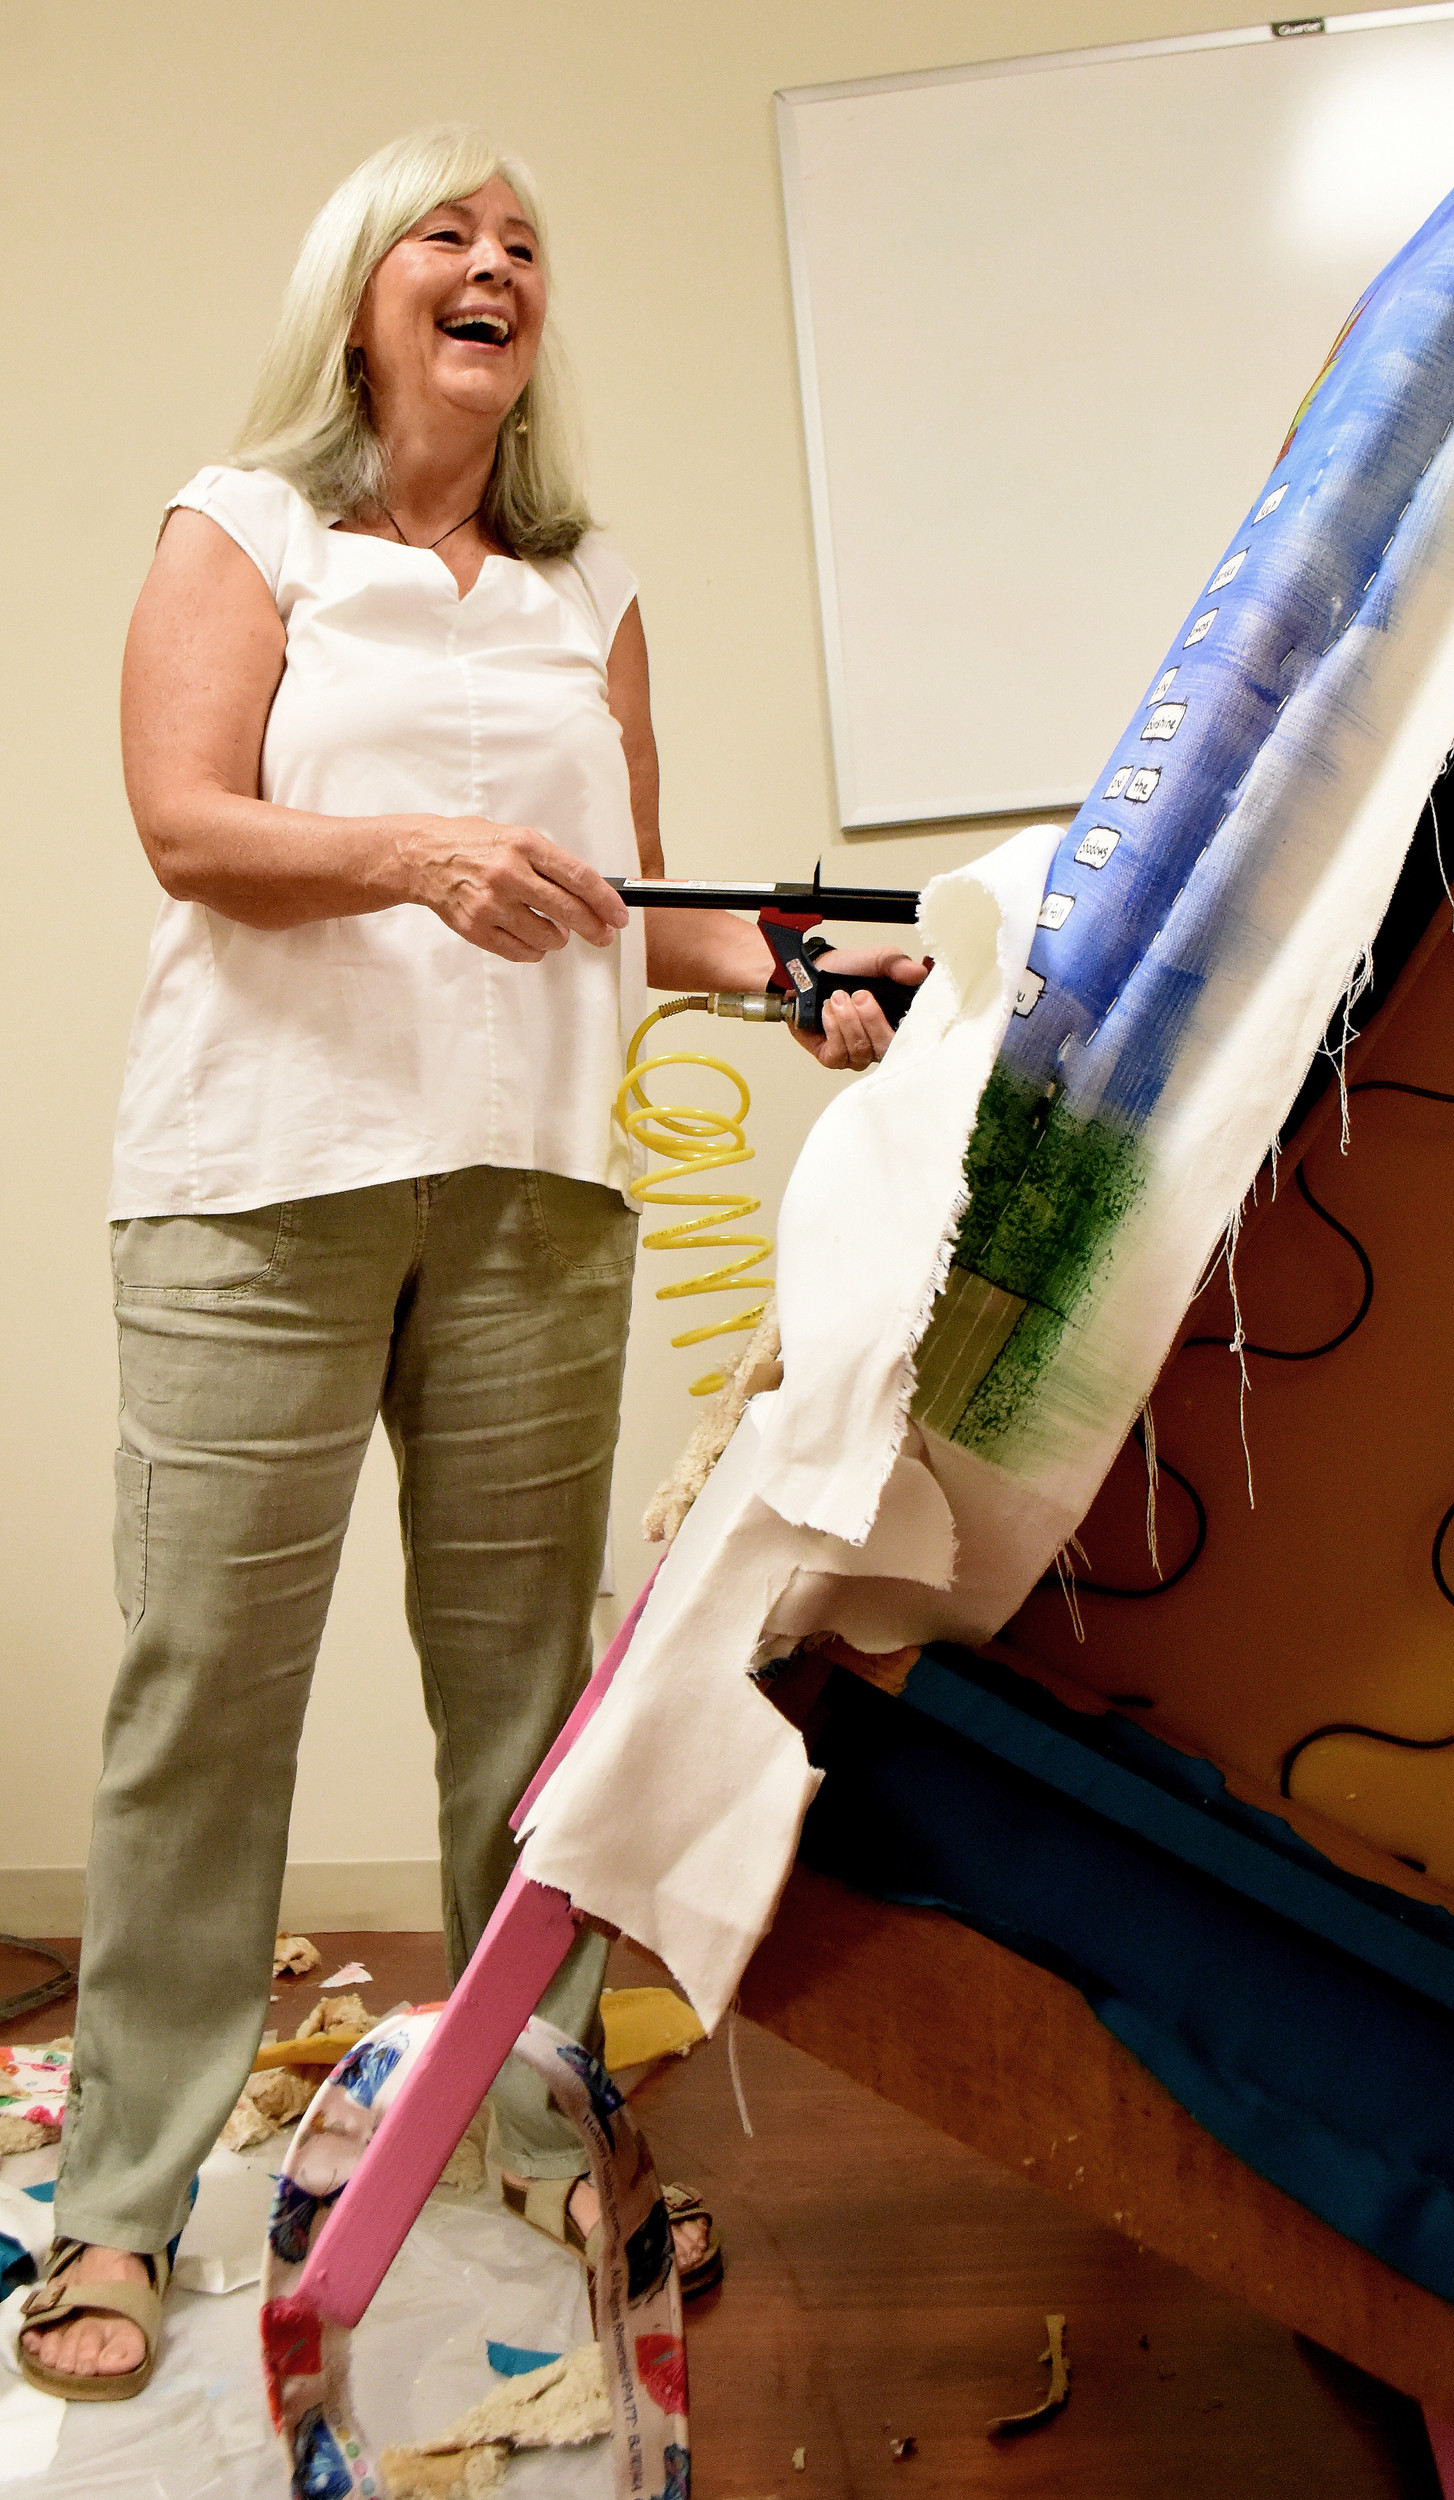 Cancer survivor Denise Conway reupholsters a chair, which will be displayed at the Survivor Dinner tent at the Relay For Life event.